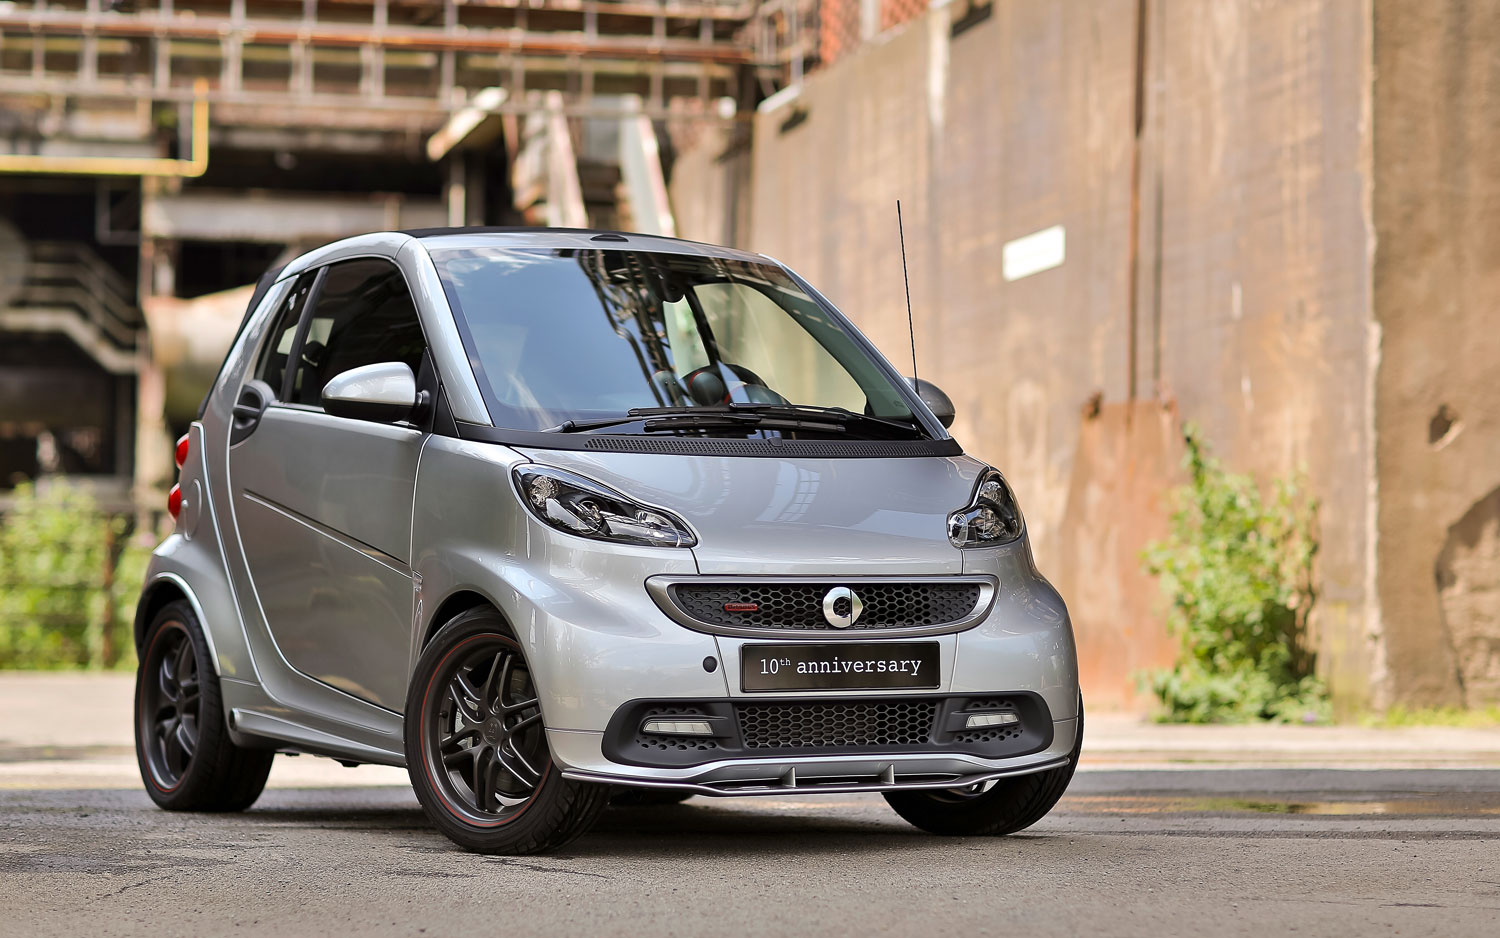 Smart Fortwo Brabus 10th Anniversary Edition Front View1